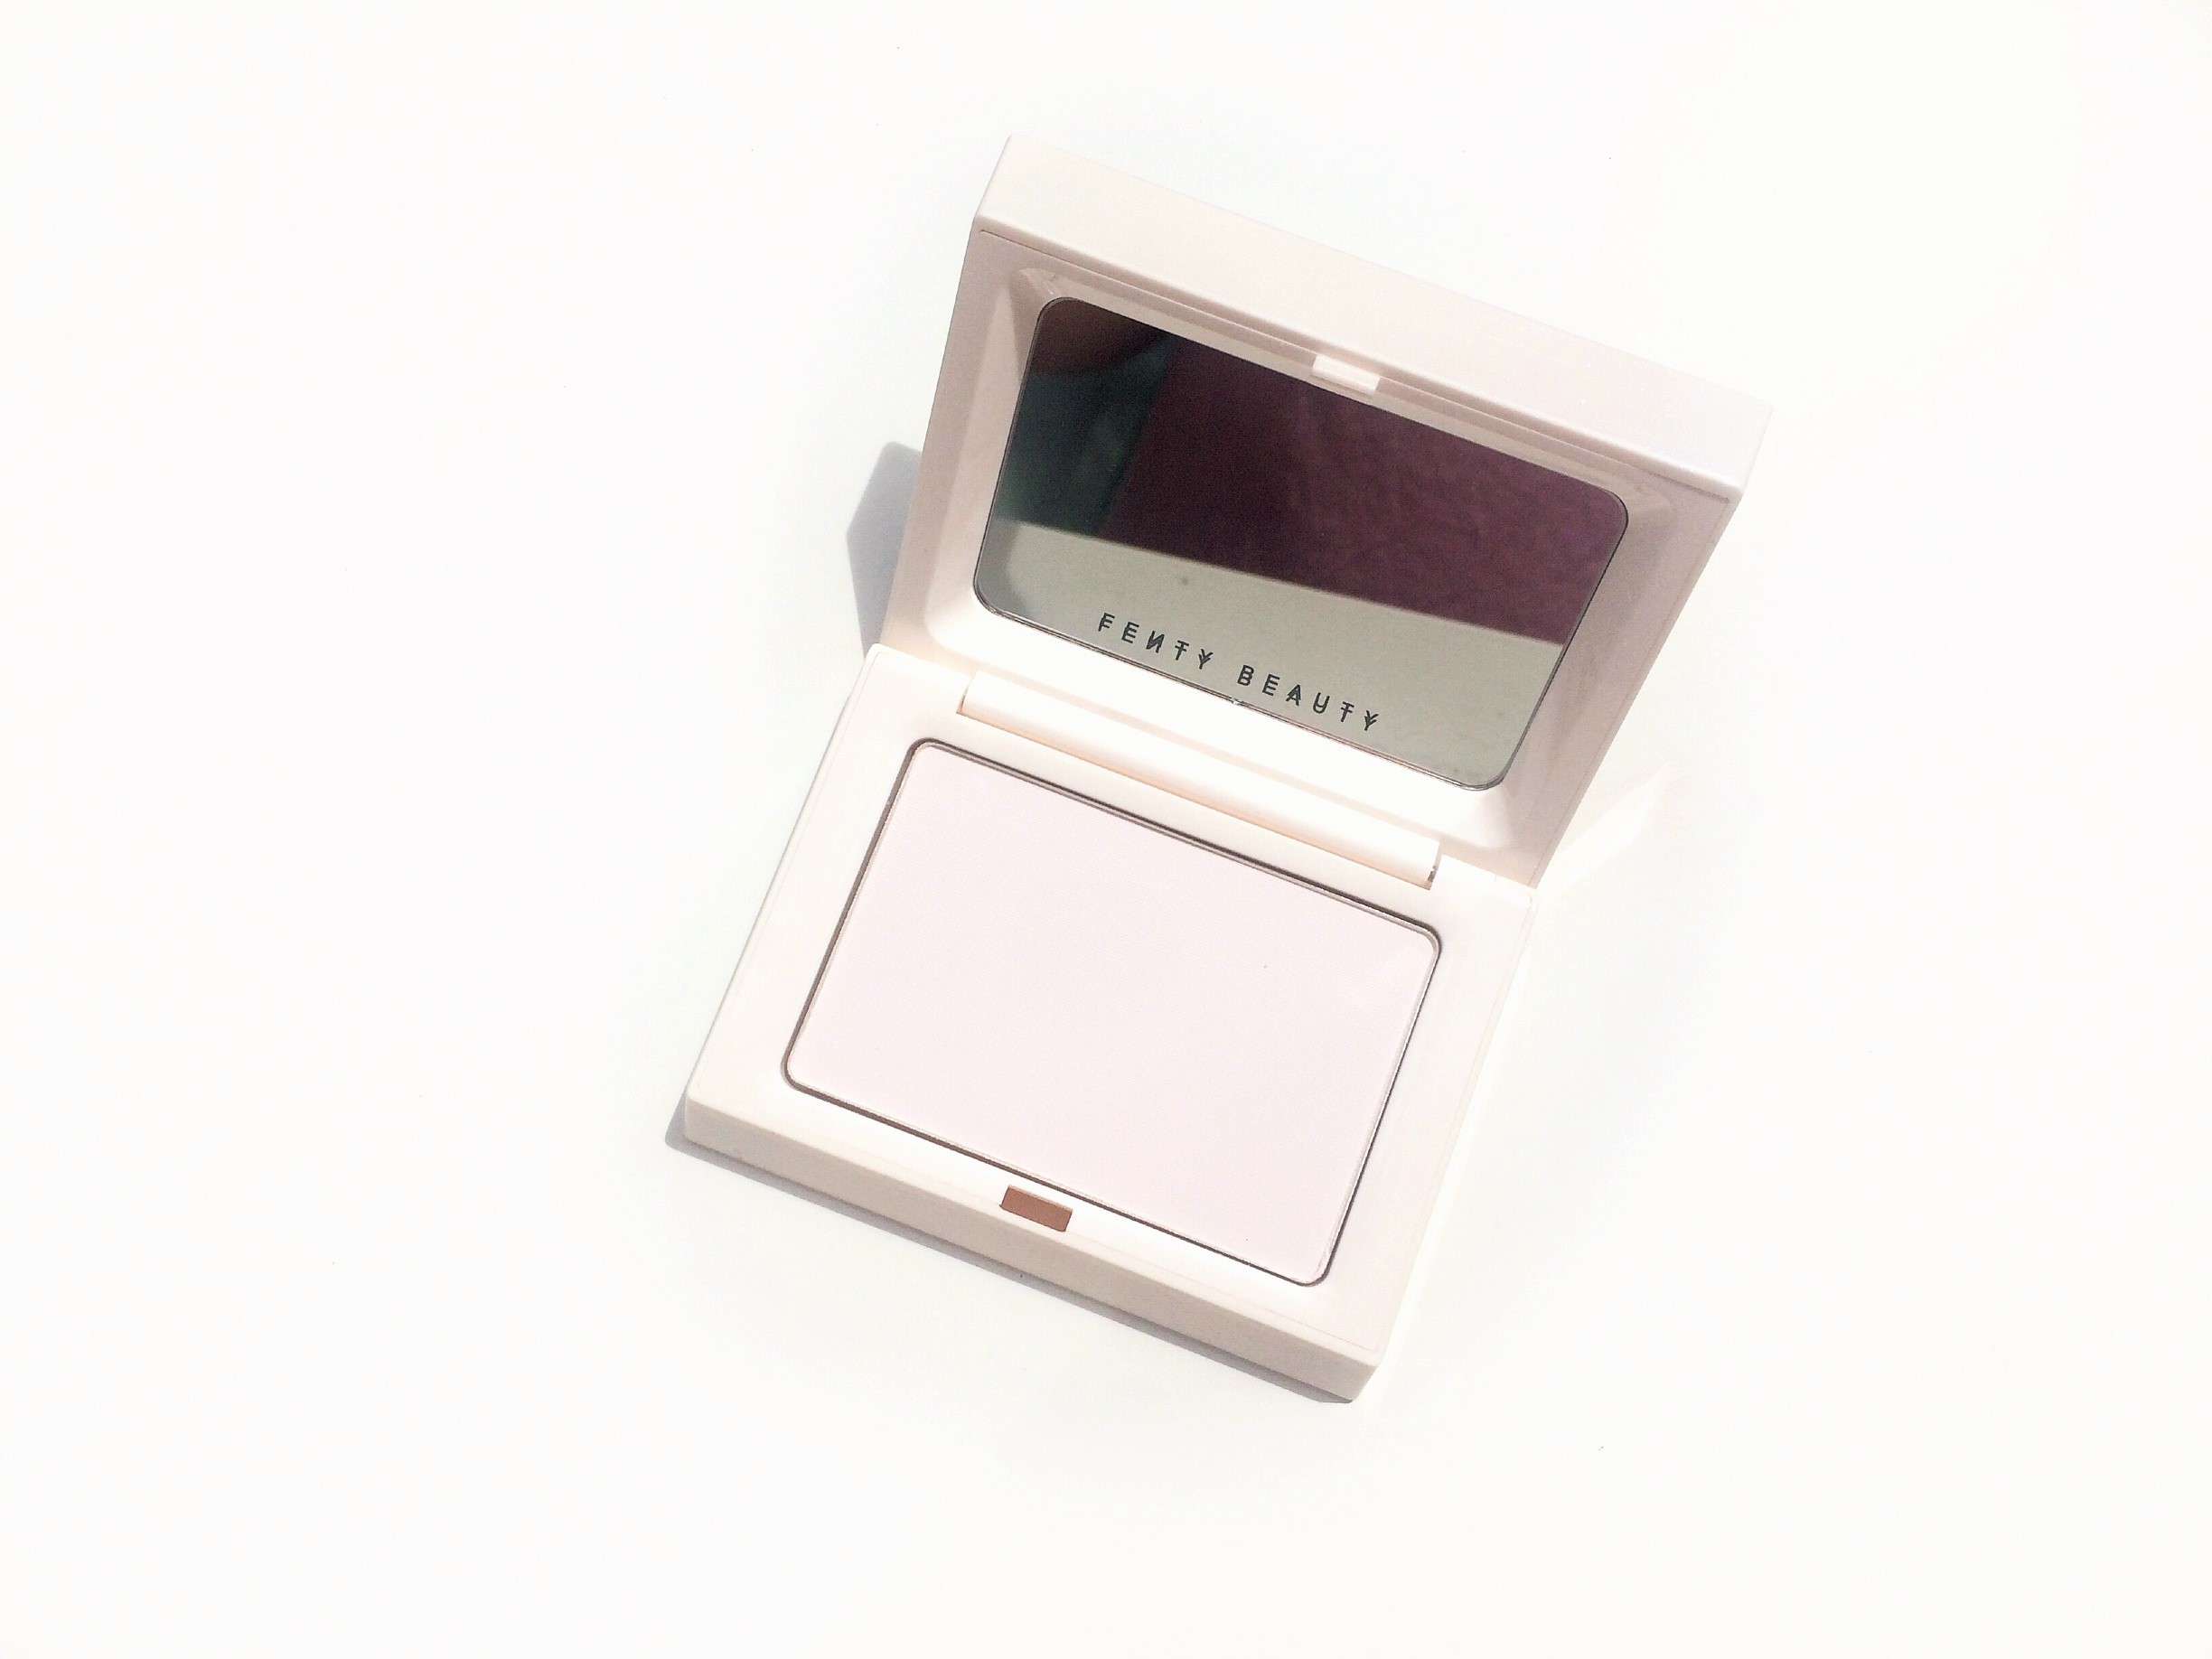 Review Fenty Invisimatte Blotting Powder (6).JPG